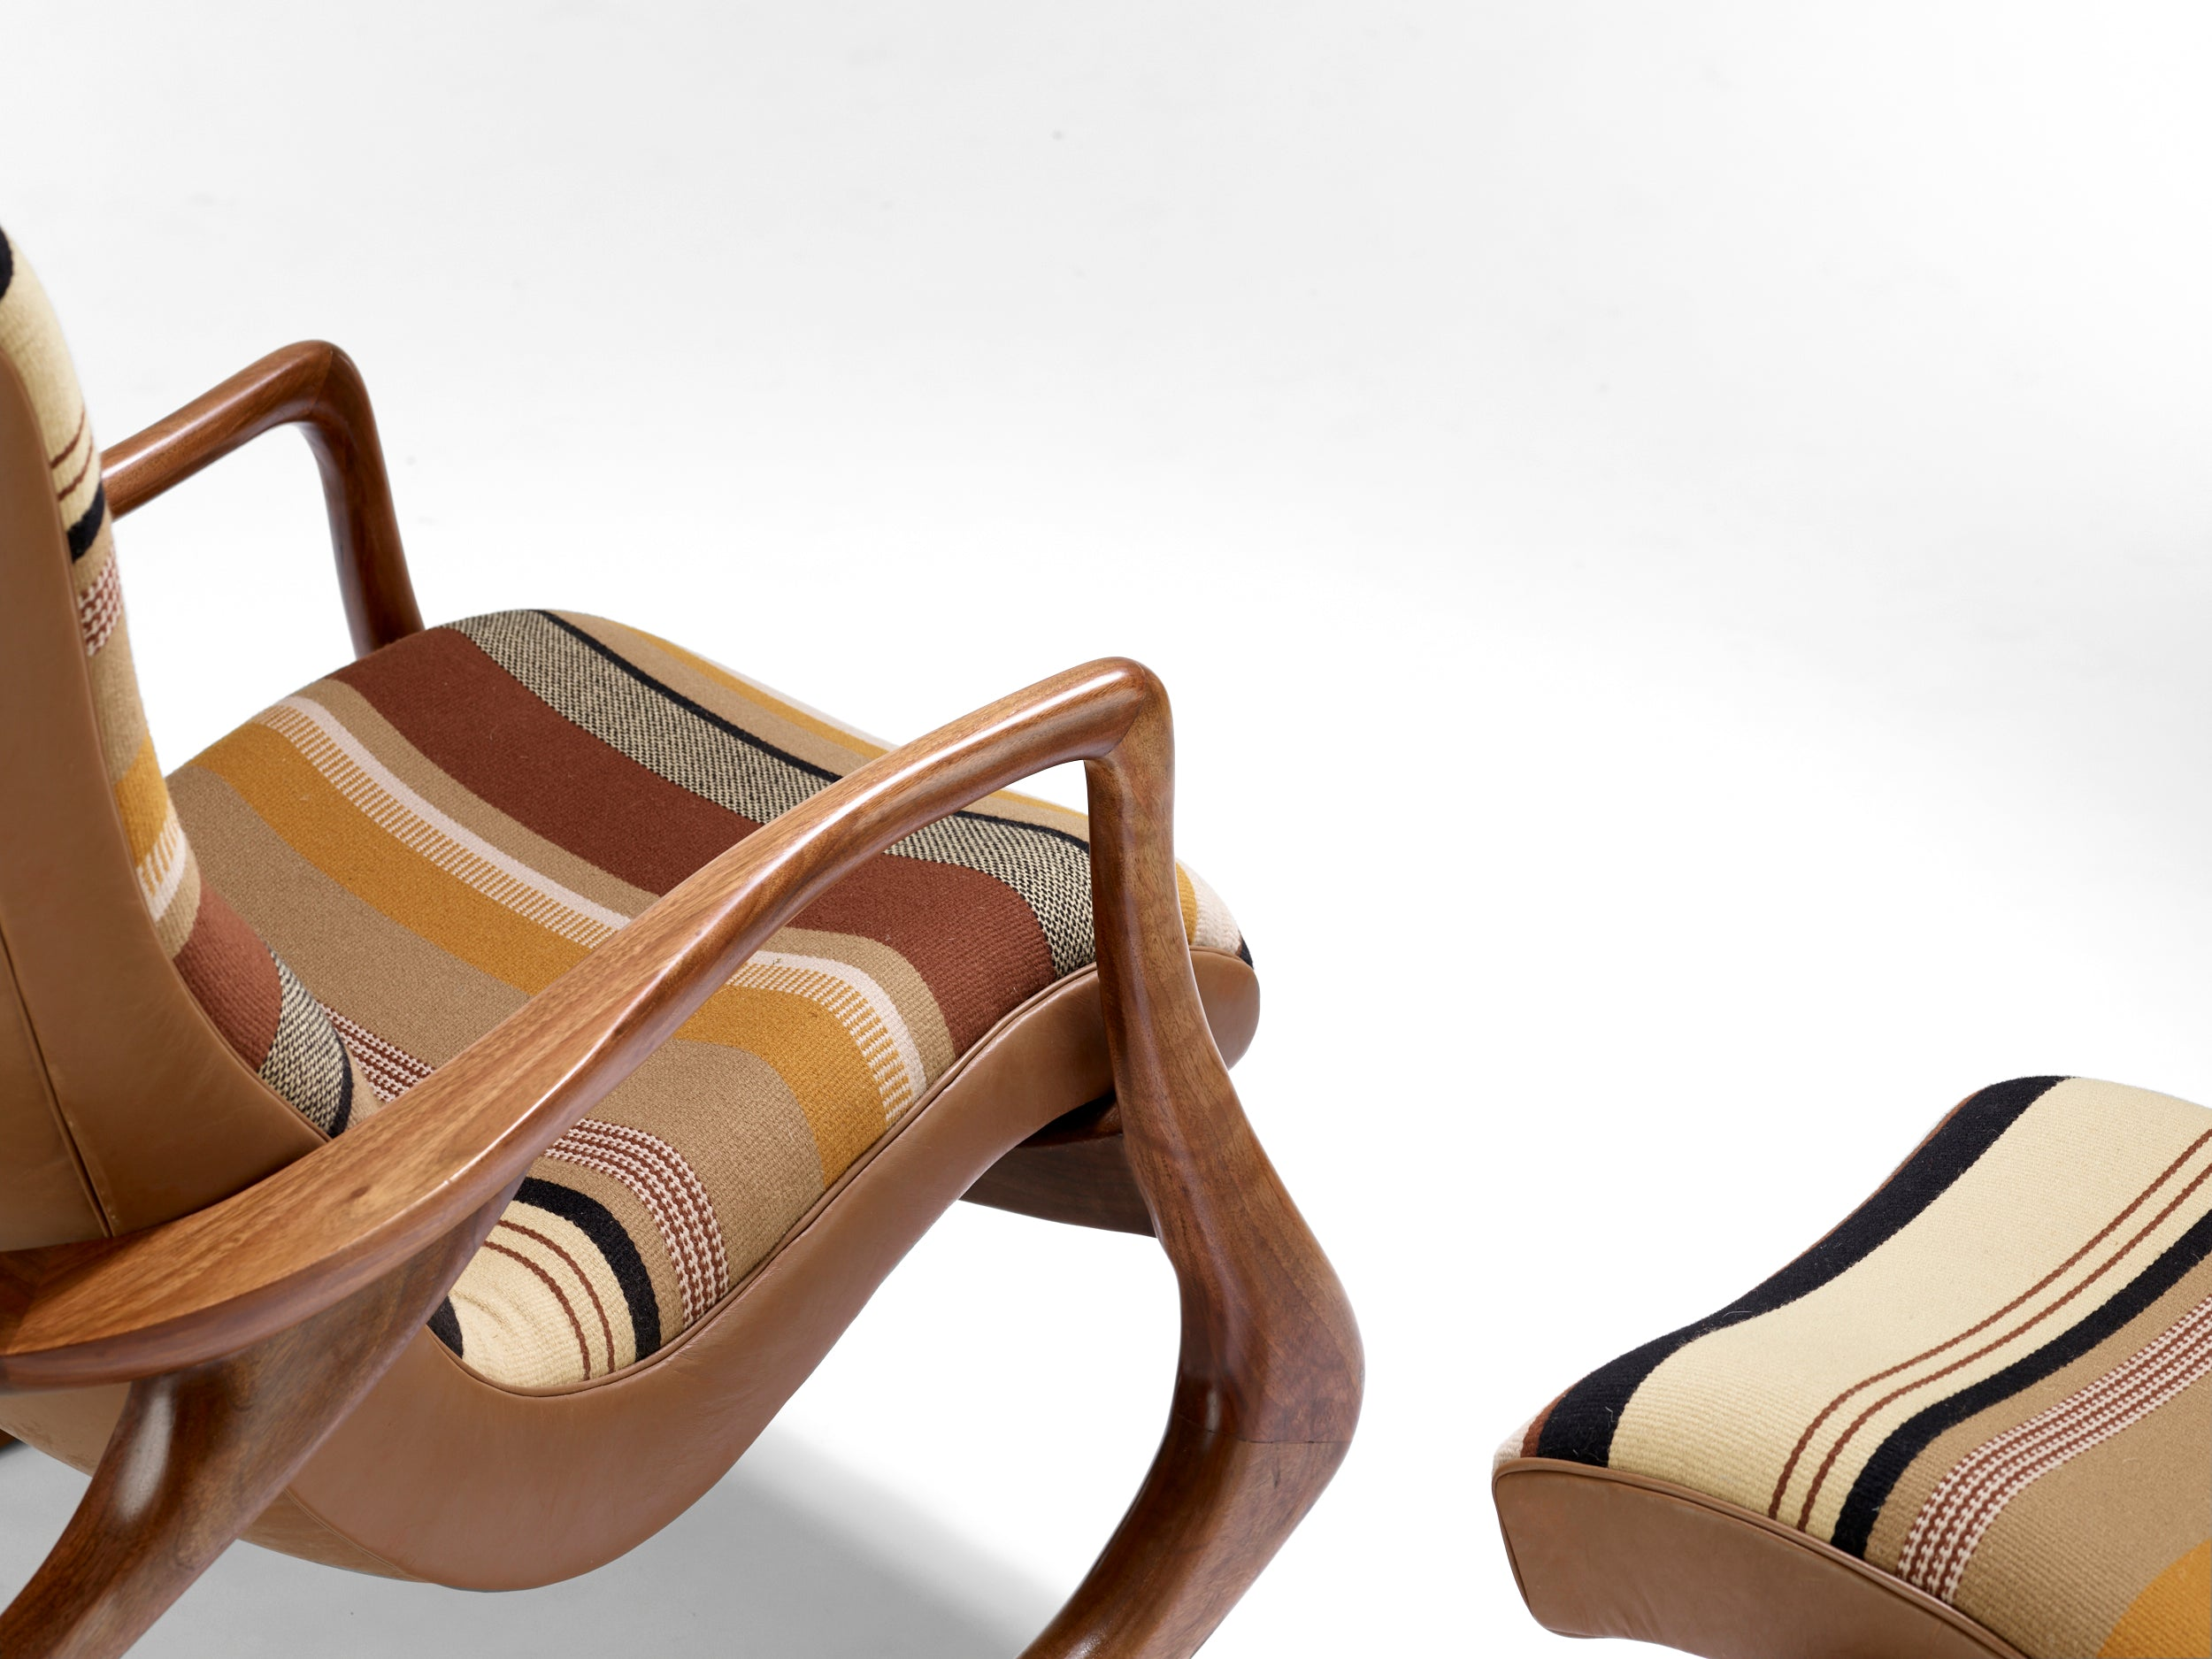 Vladimir Kagan Contour rocking chair and ottoman